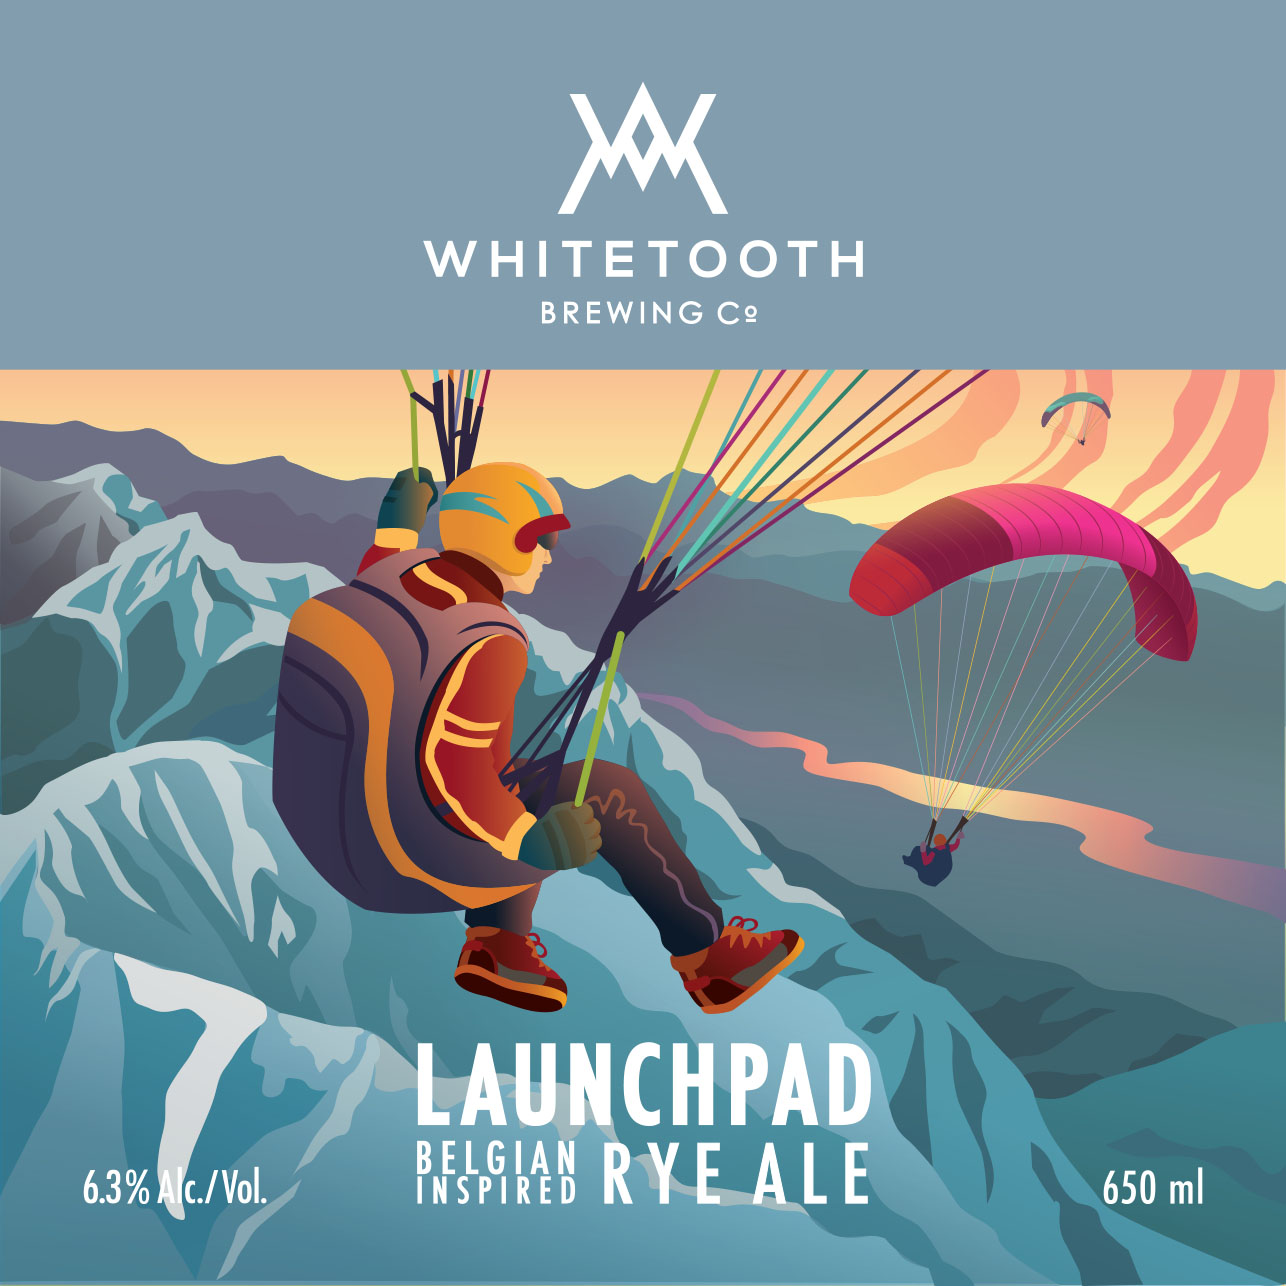 Untitled-1_0003_WhiteTooth-Launchpad-Rye-Ale-PREP.jpg